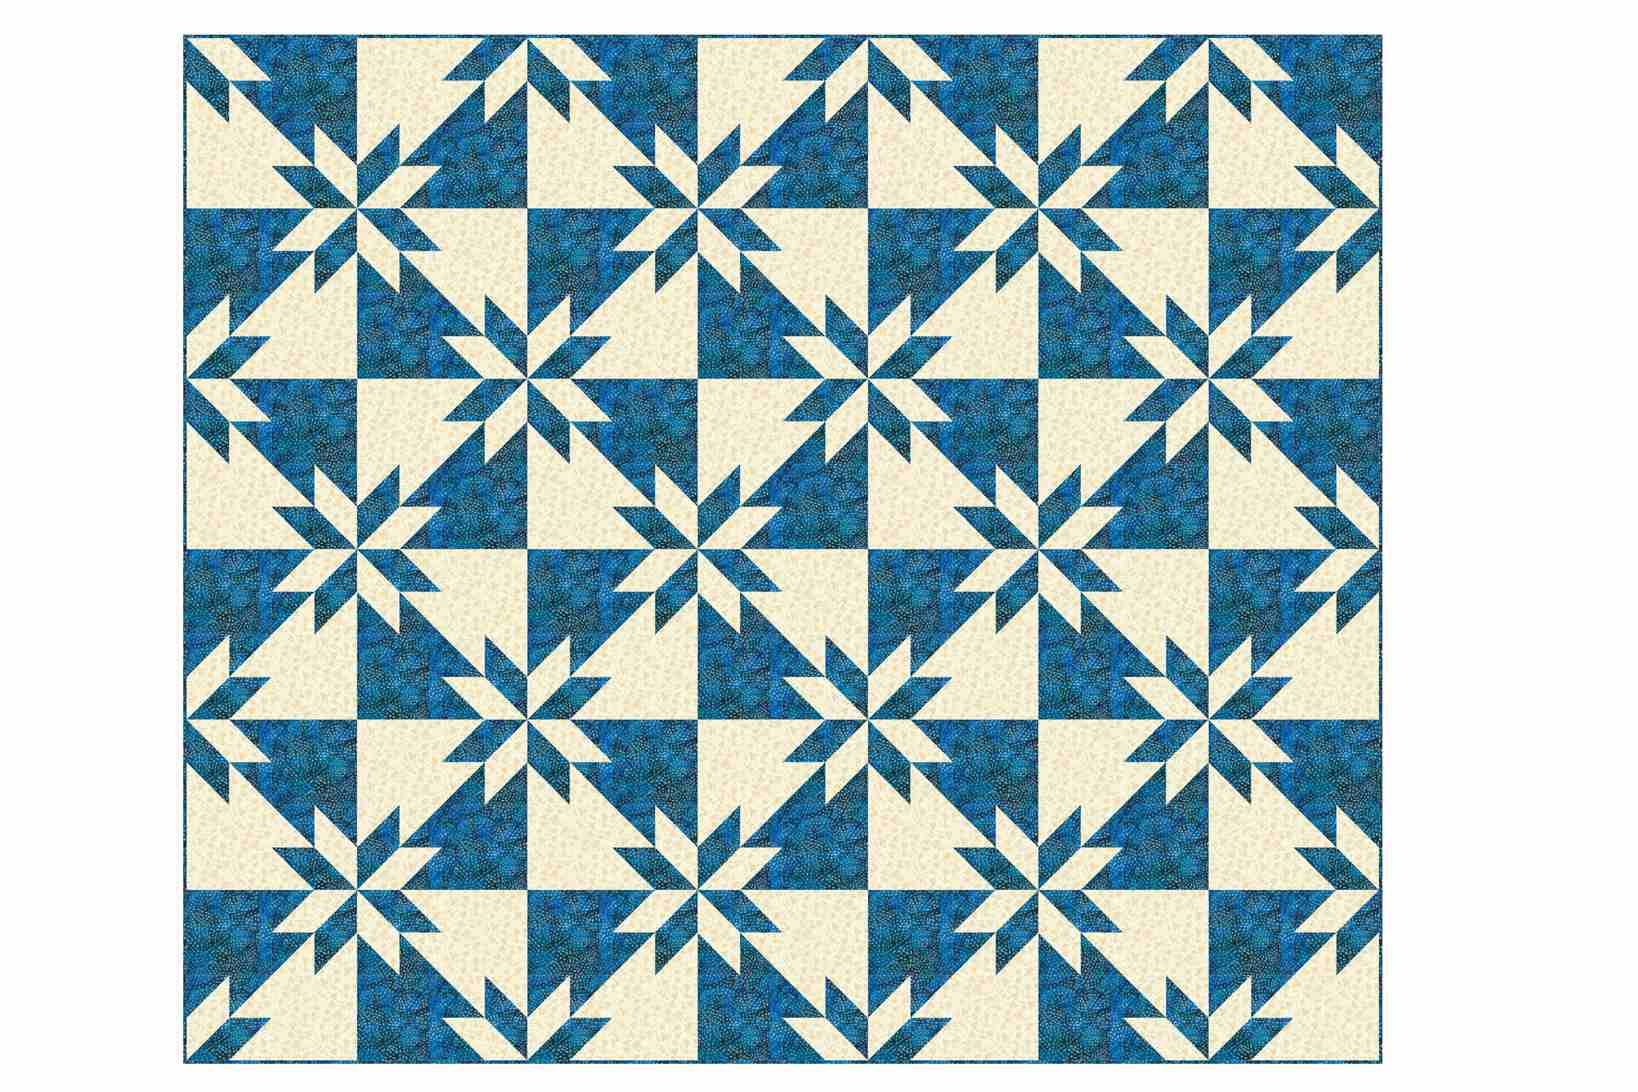 20 Easy Quilt Patterns For Beginning Quilters - Quilt Patterns Free Printable